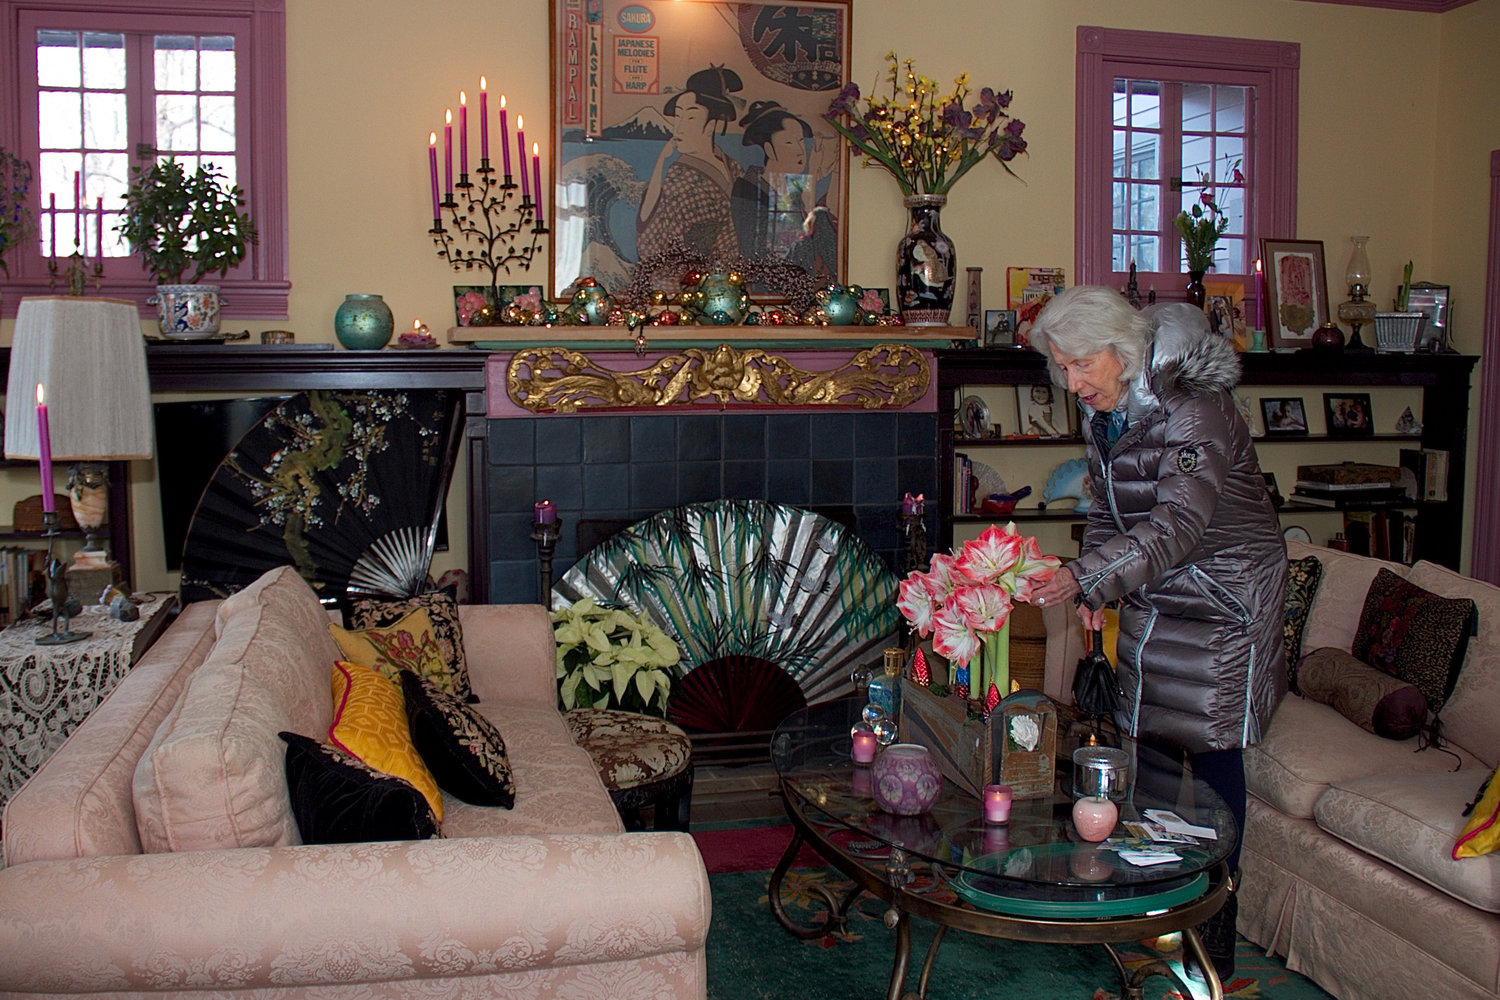 Jan Hartley peered into a budding floral arrangement in Iris Targoff's home, which bloomed with decorative floral décor.